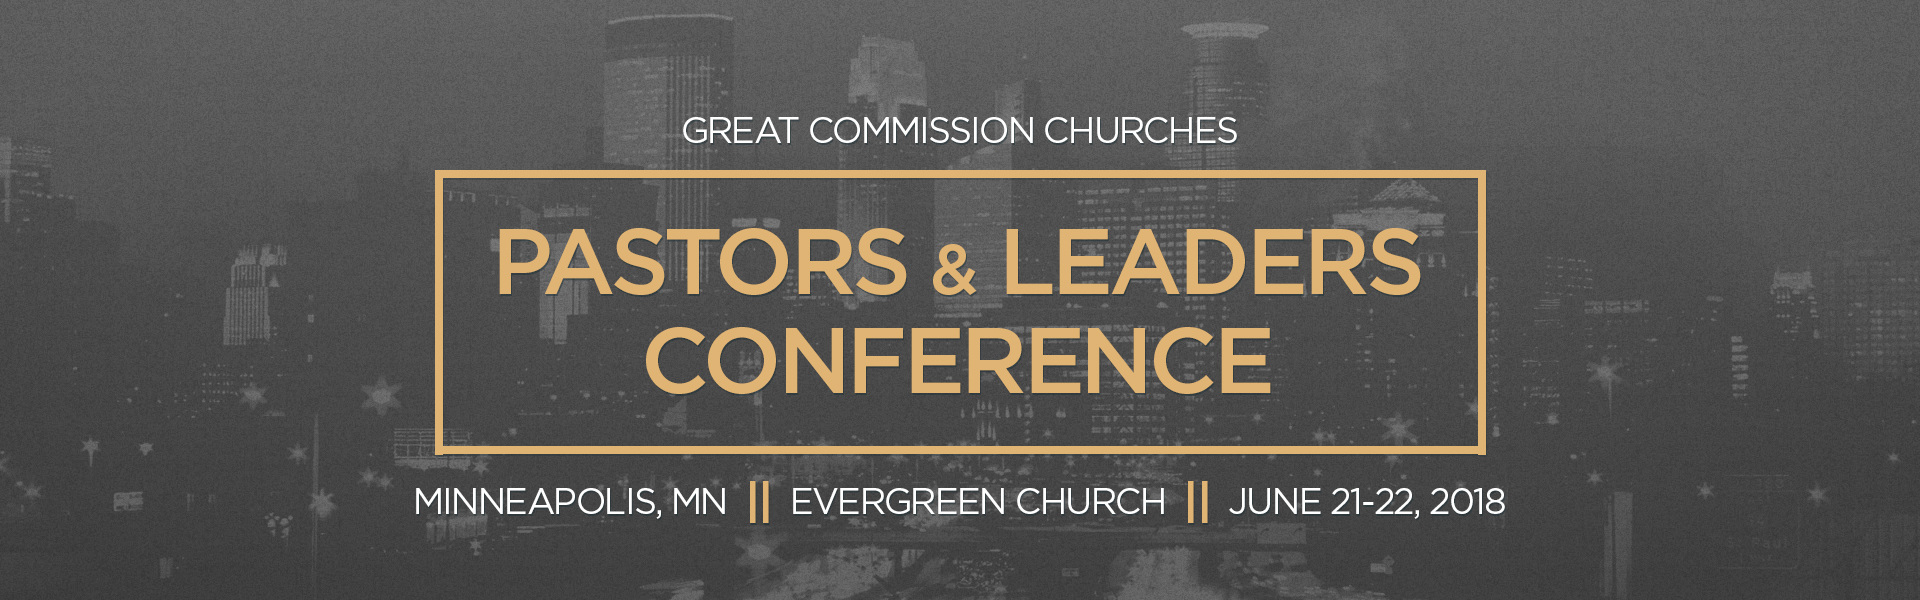 great commission churches pastors conference banner